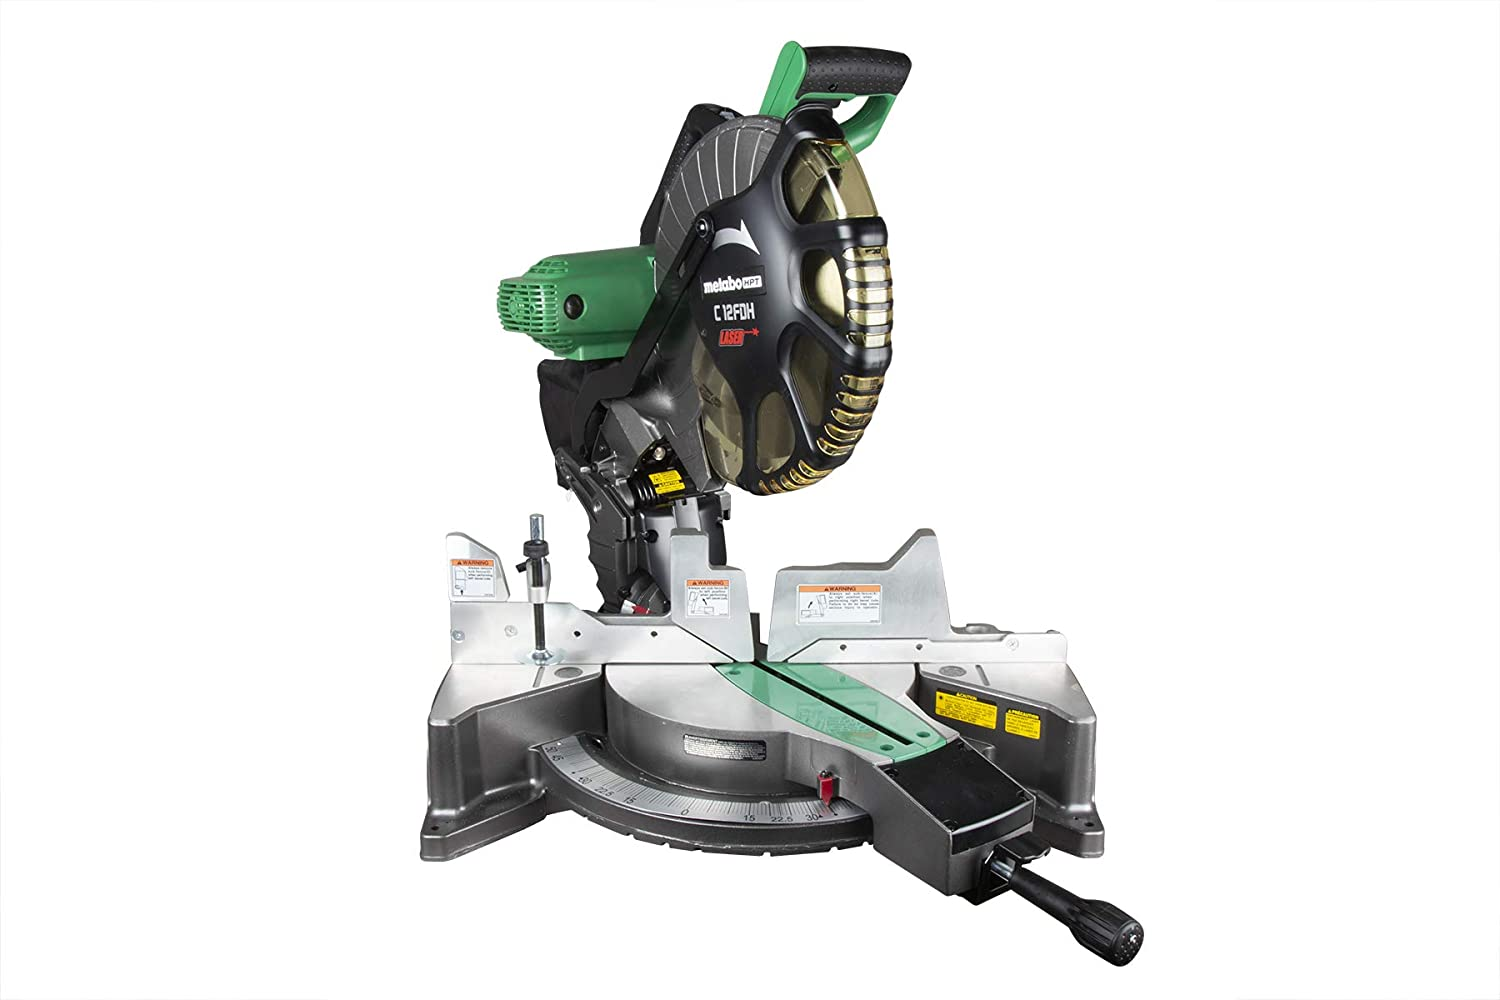 """Metabo HPT C12FDHS 12"""" Double Bevel Compound Miter Saw, Laser Marker System, 15-Amp Motor, Tall Pivoting Aluminum Fence, Micro-Bevel Adjustment Knob, 5 Year Warranty"""